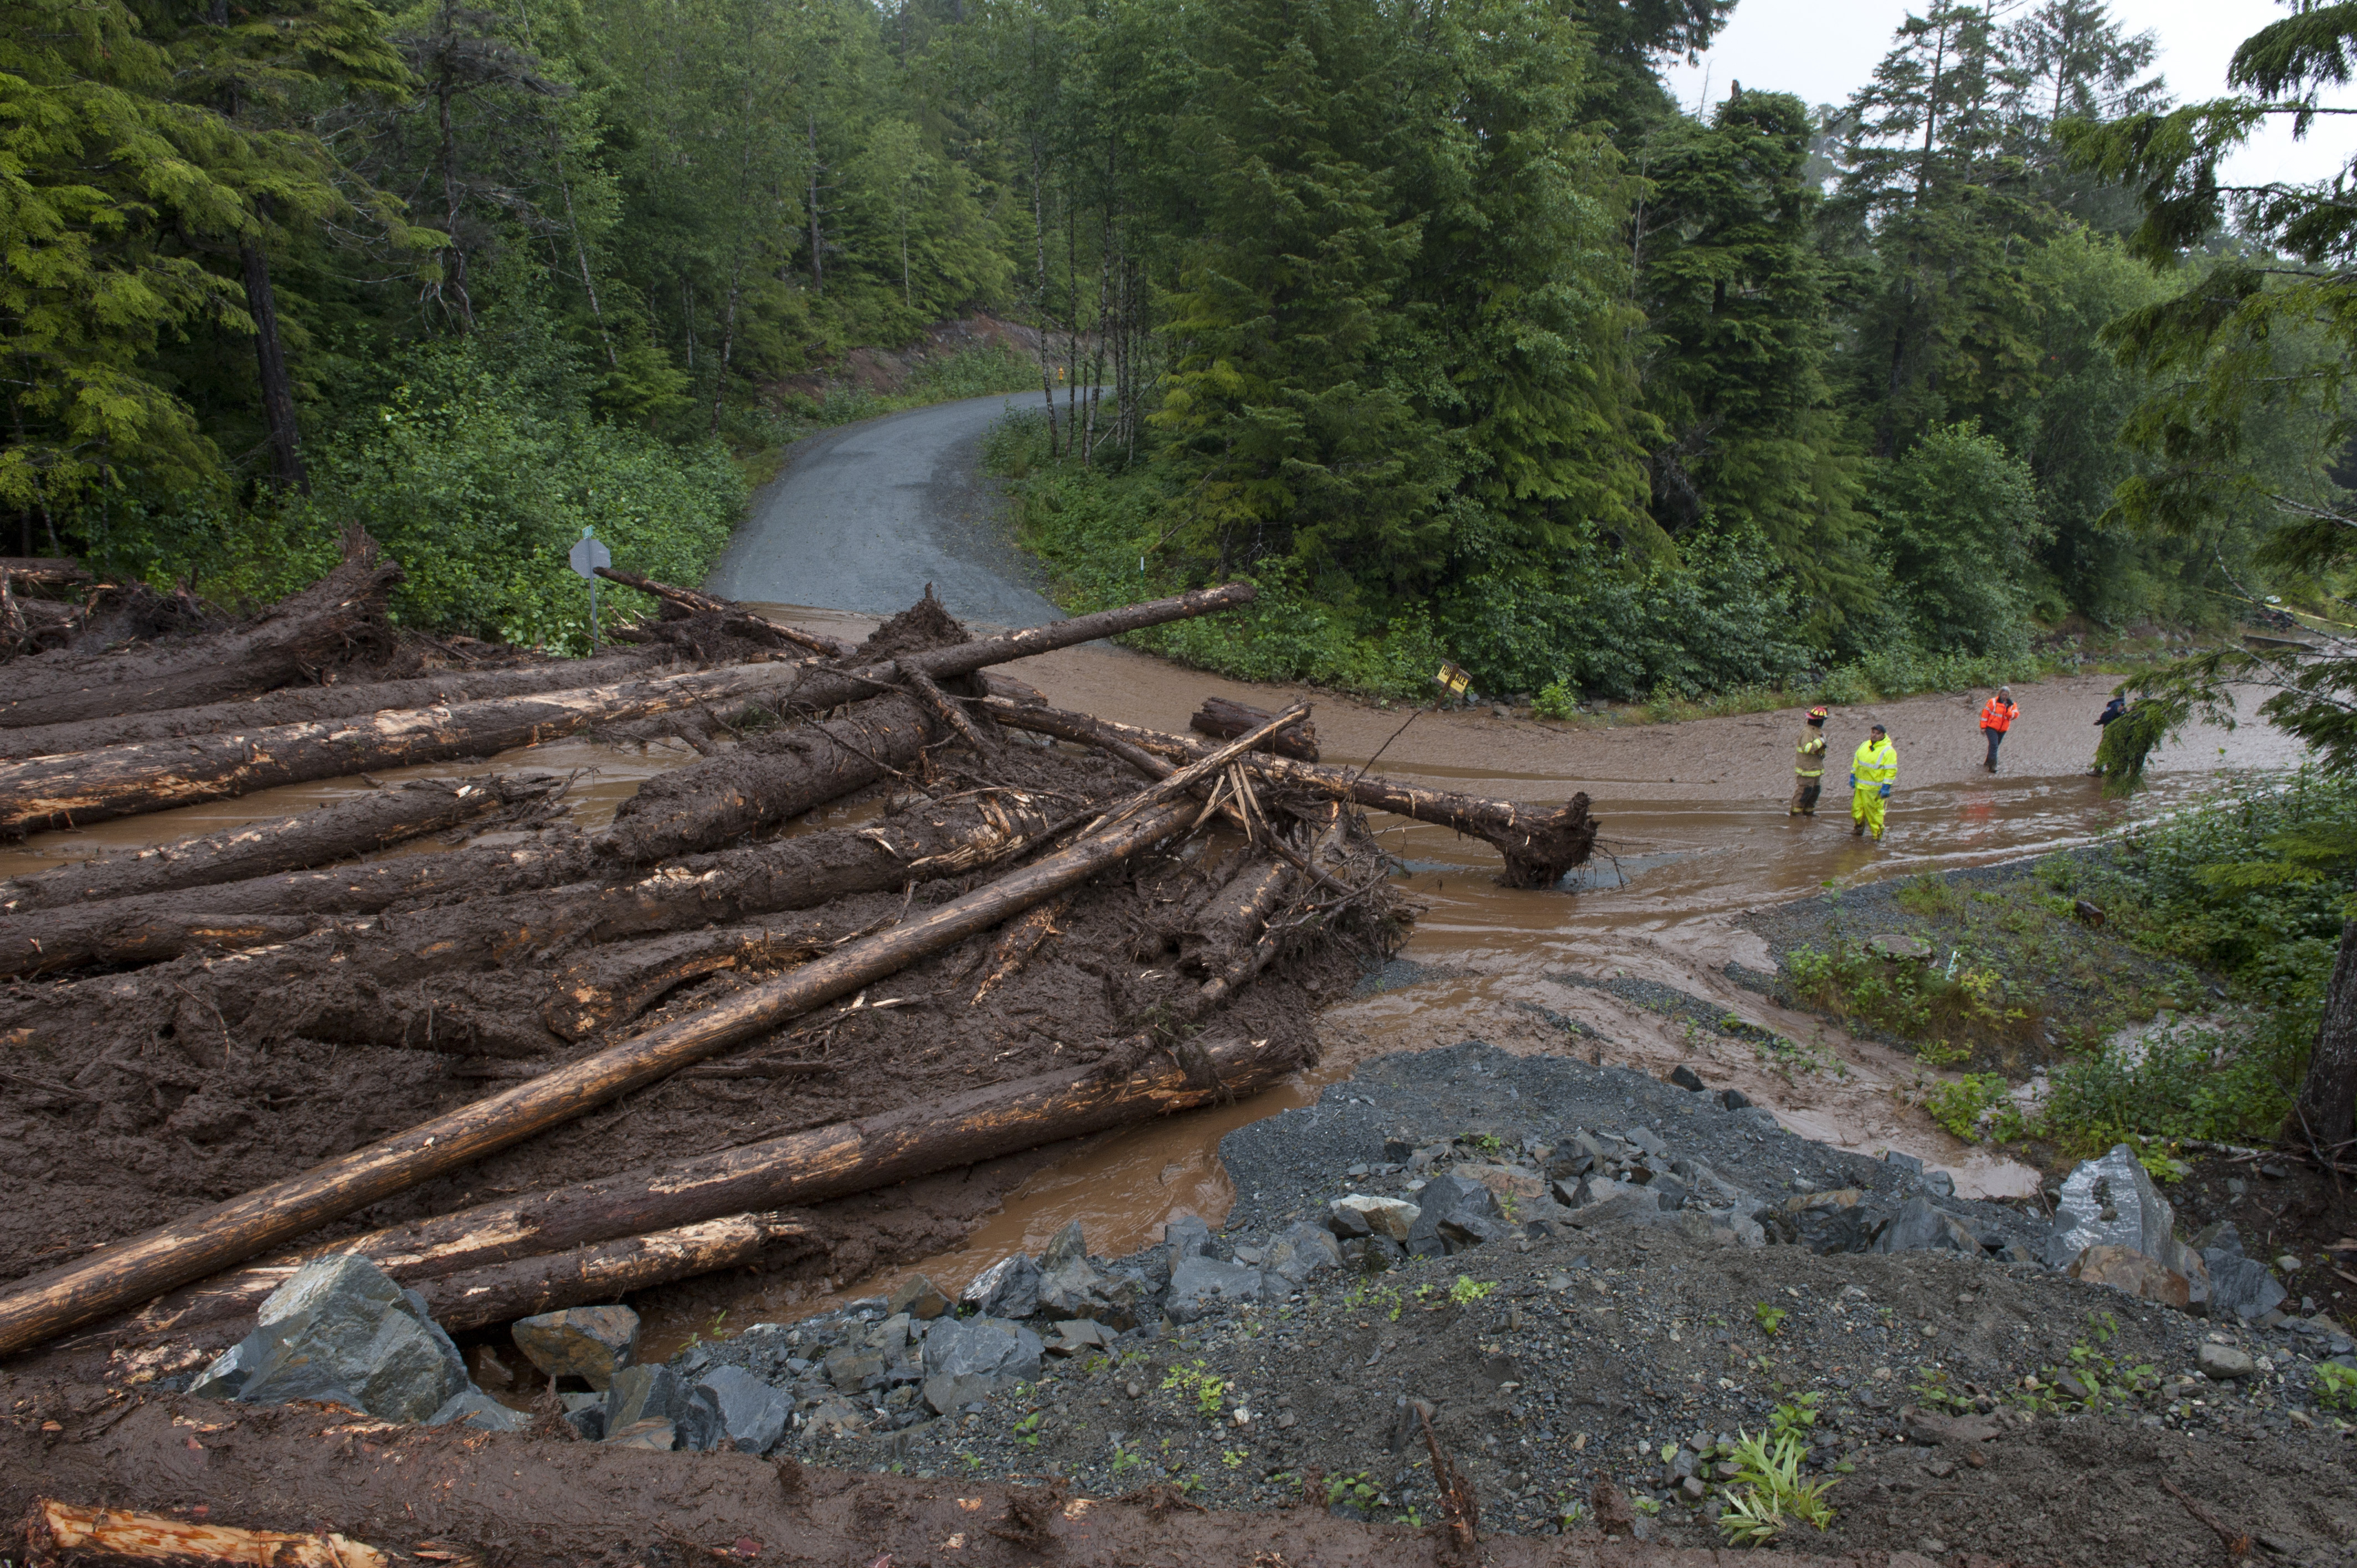 Construction workers and emergency crew members look at the damage caused by a landslide on Kramer Drive on Aug. 18, 2015, in Sitka, Alaska.